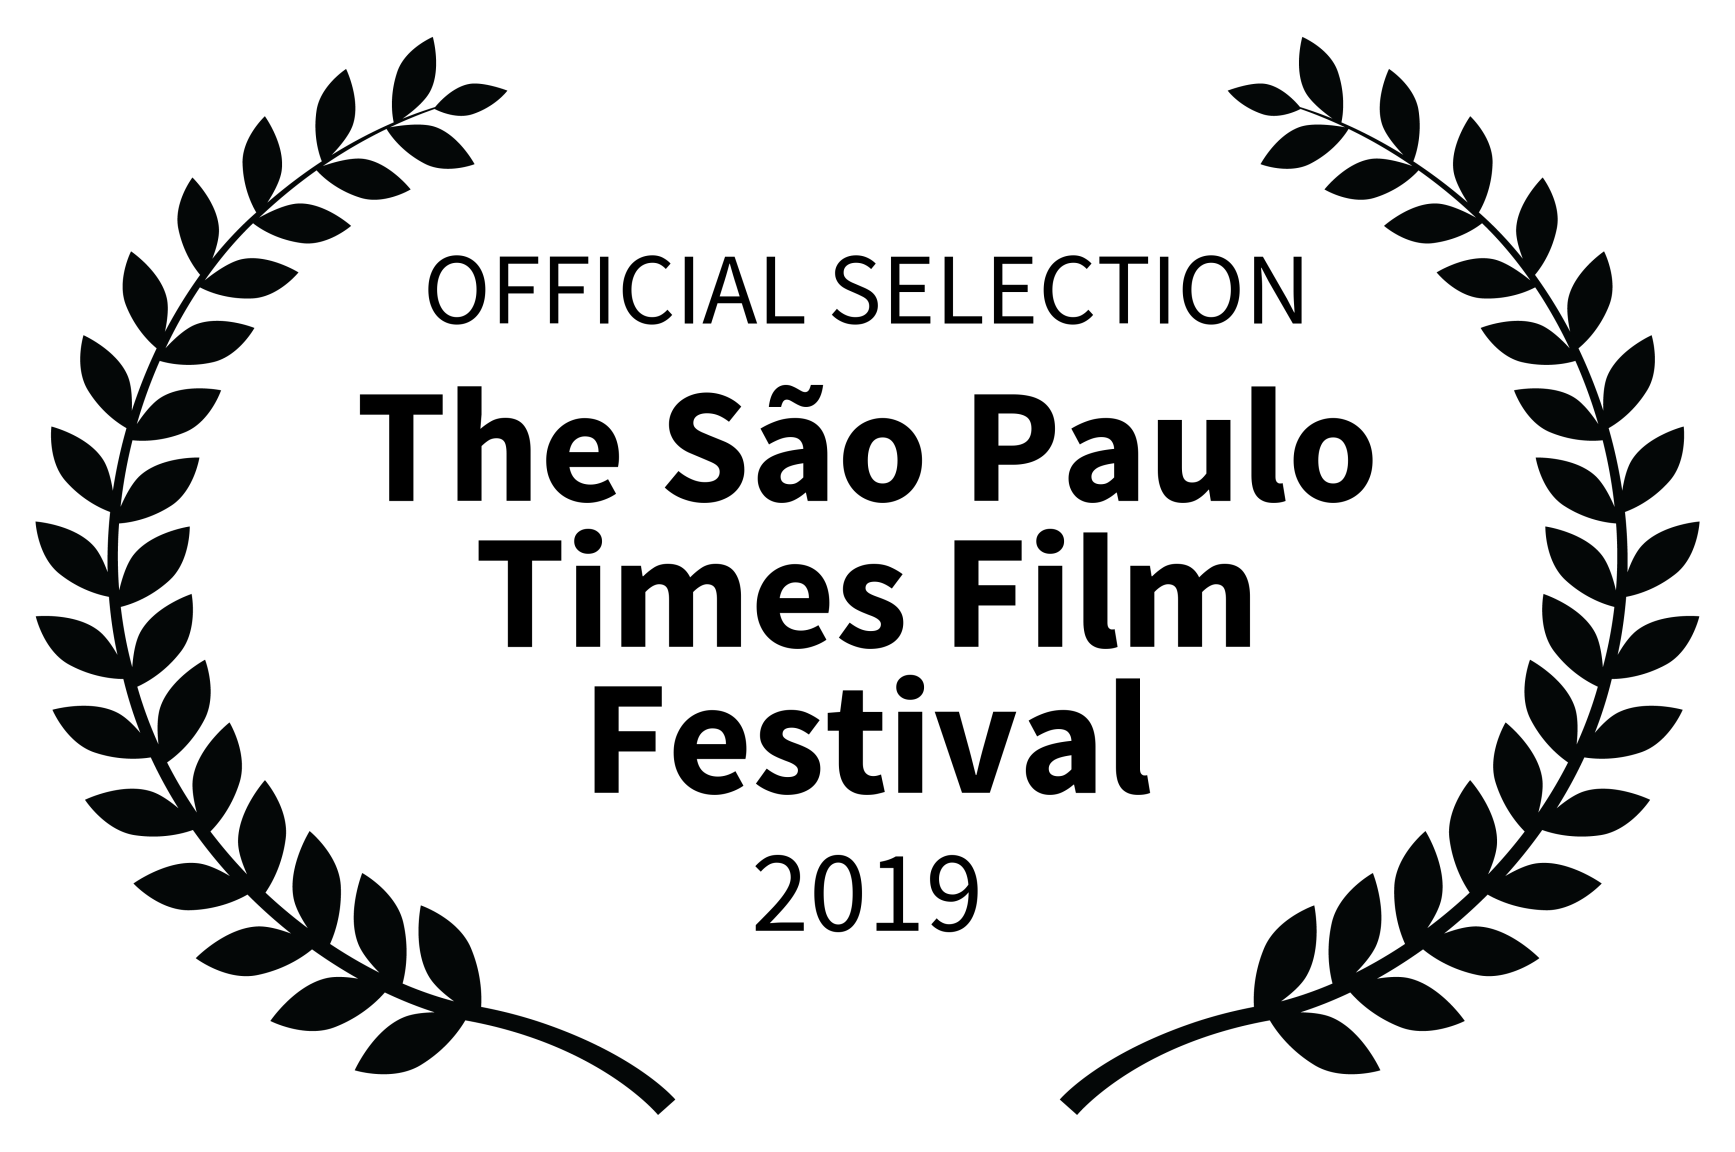 OFFICIAL SELECTION - The So Paulo Times Film Festival - 2019